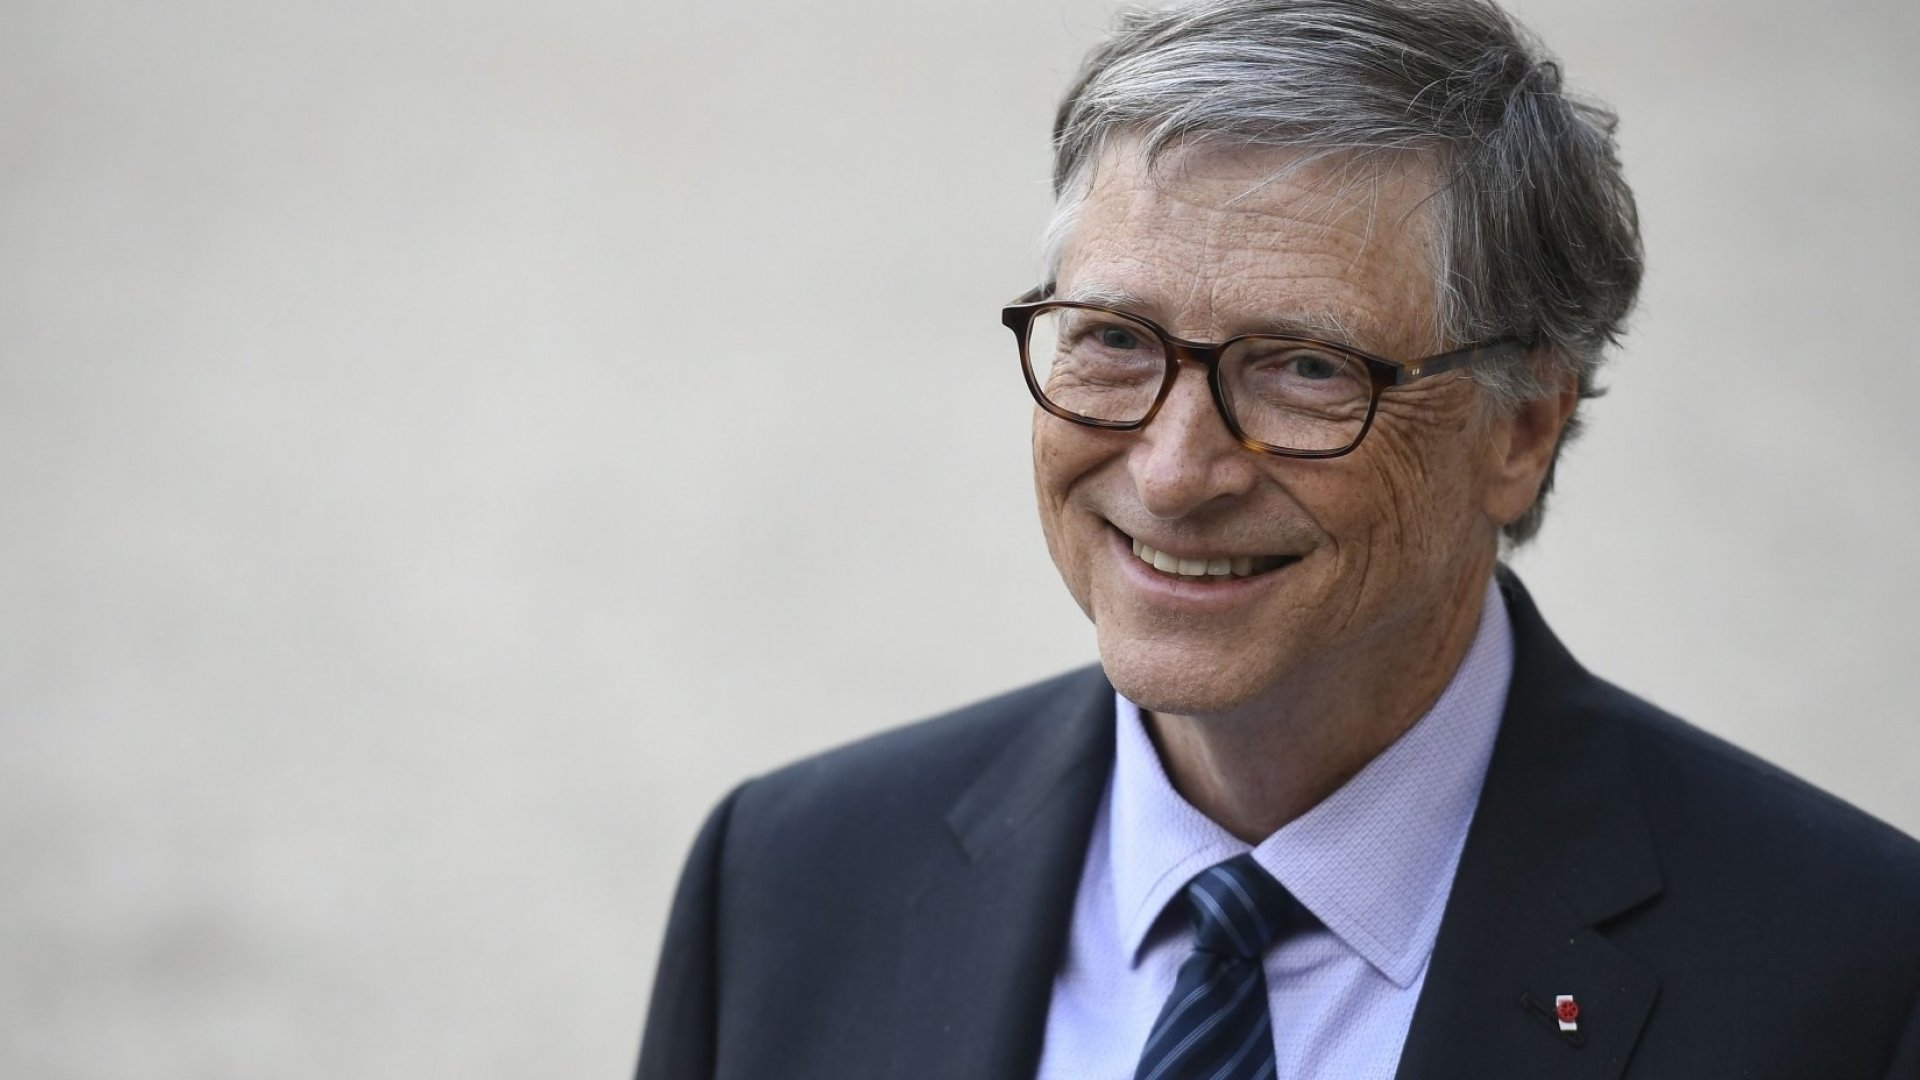 Microsoft founder and billionaire philanthropist Bill Gates